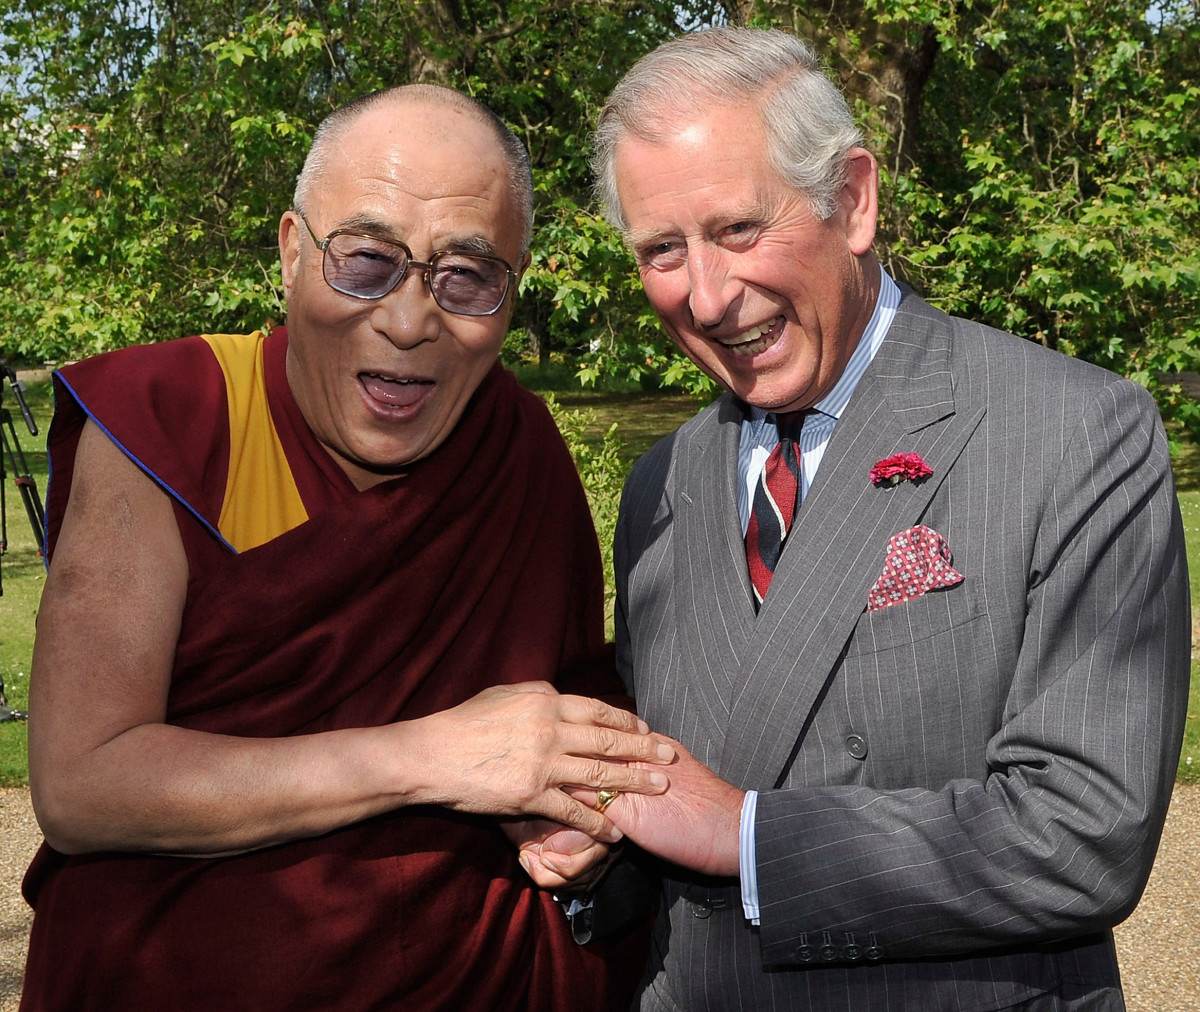 Prince Charles, Prince of Wales receives the Dalai Lama at Clarence House in London, England on June 20, 2012, during the Dalai Lama's recent tour of the United Kingdom. (Photo by Gareth Cattermole - WPA Pool/Getty Images)